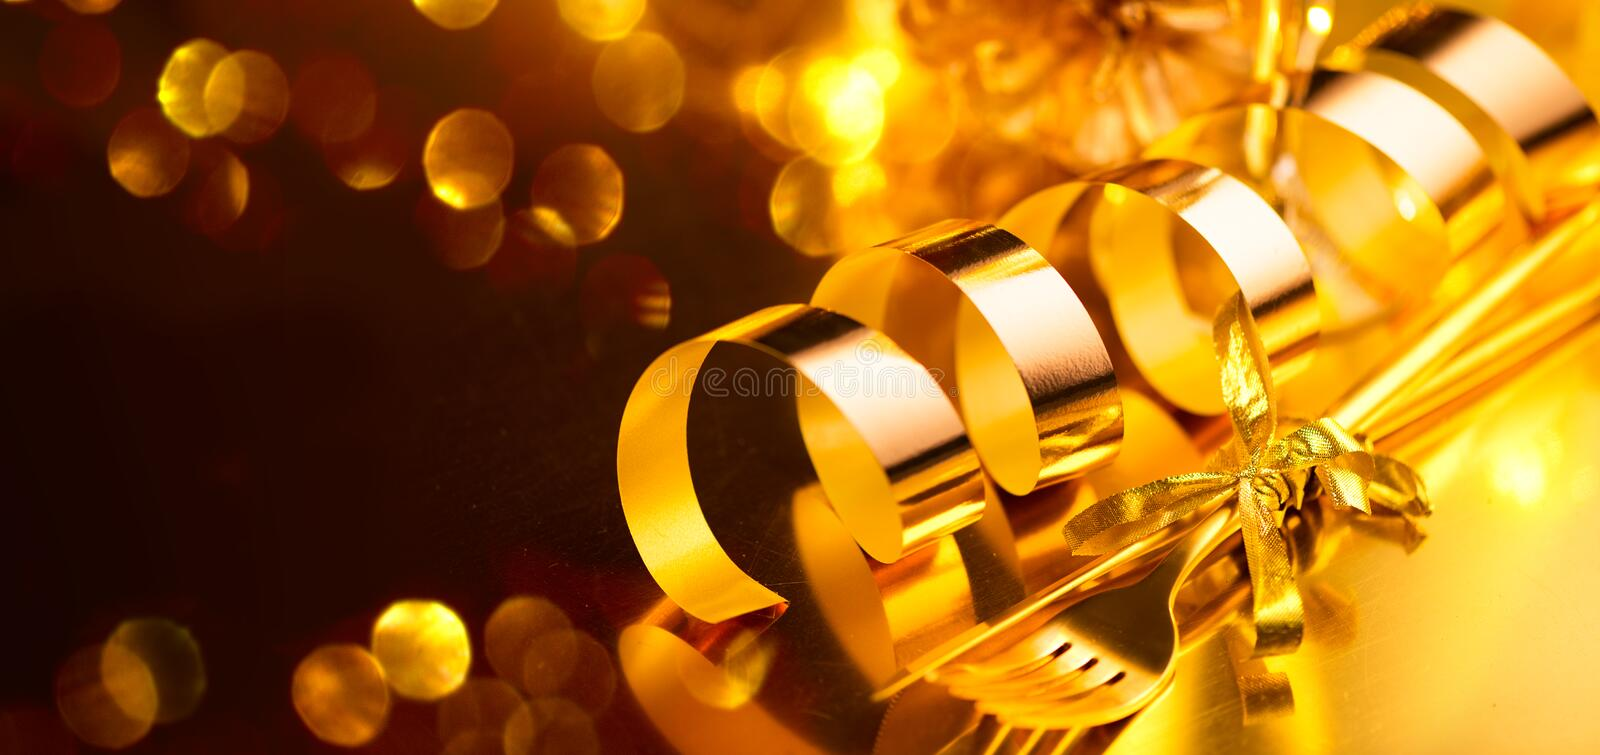 Golden cutlery, luxury Christmas table settings. Table served for Christmas holiday dinner. Xmas and New Year stock image